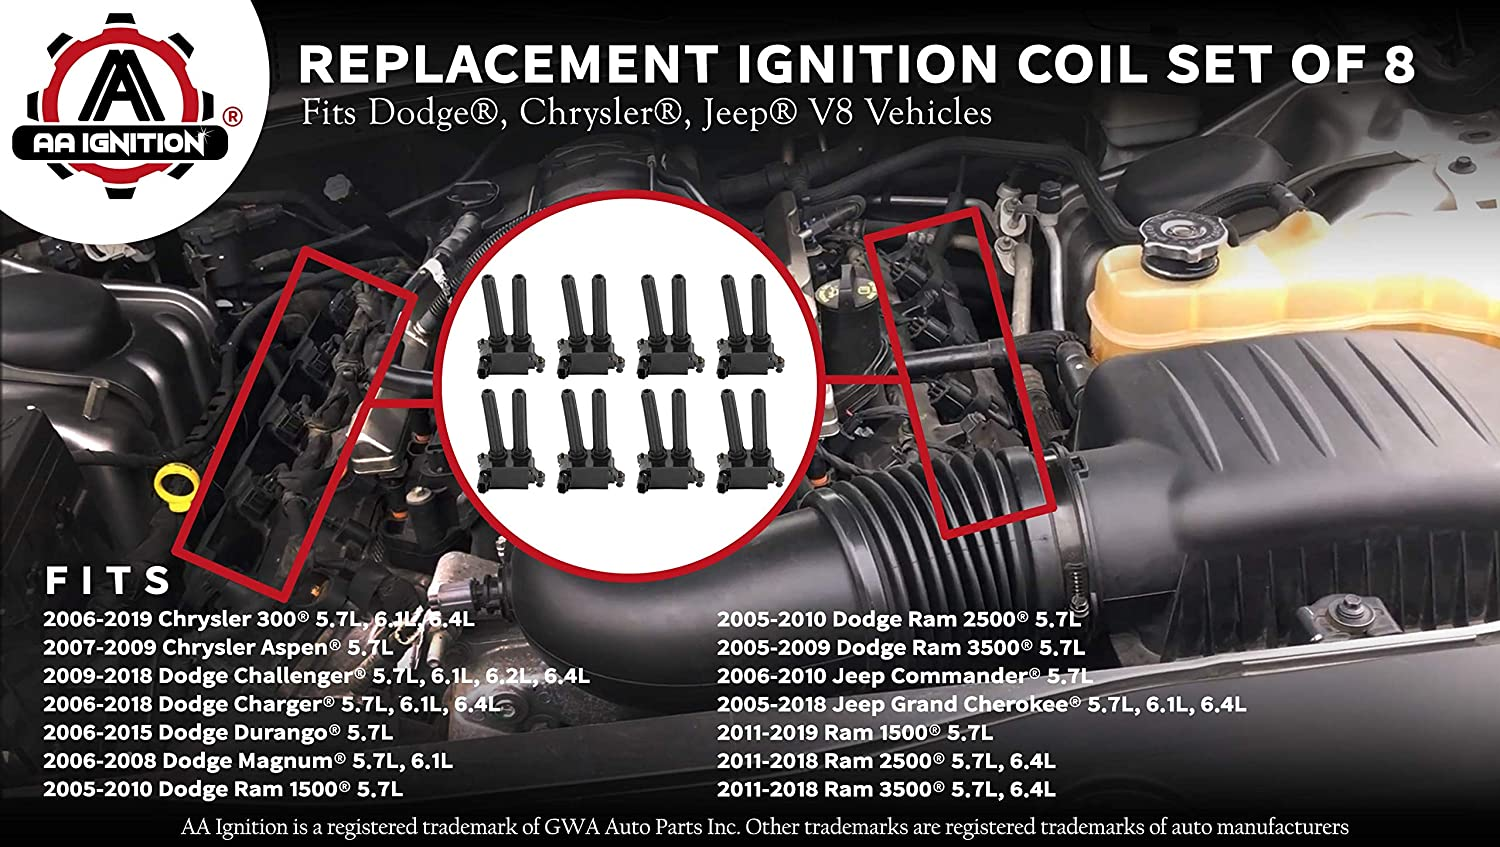 6.4L HEMI Ignition Coil Pack Set of 8 Jeep Grand Cherokee 5.7L 3500 Challenger 5.7L 56029129AF Dodge Charger Fits Dodge Ram 1500 6.1L Commander 56029129AA UF-504 Replaces 5602129AA 2500